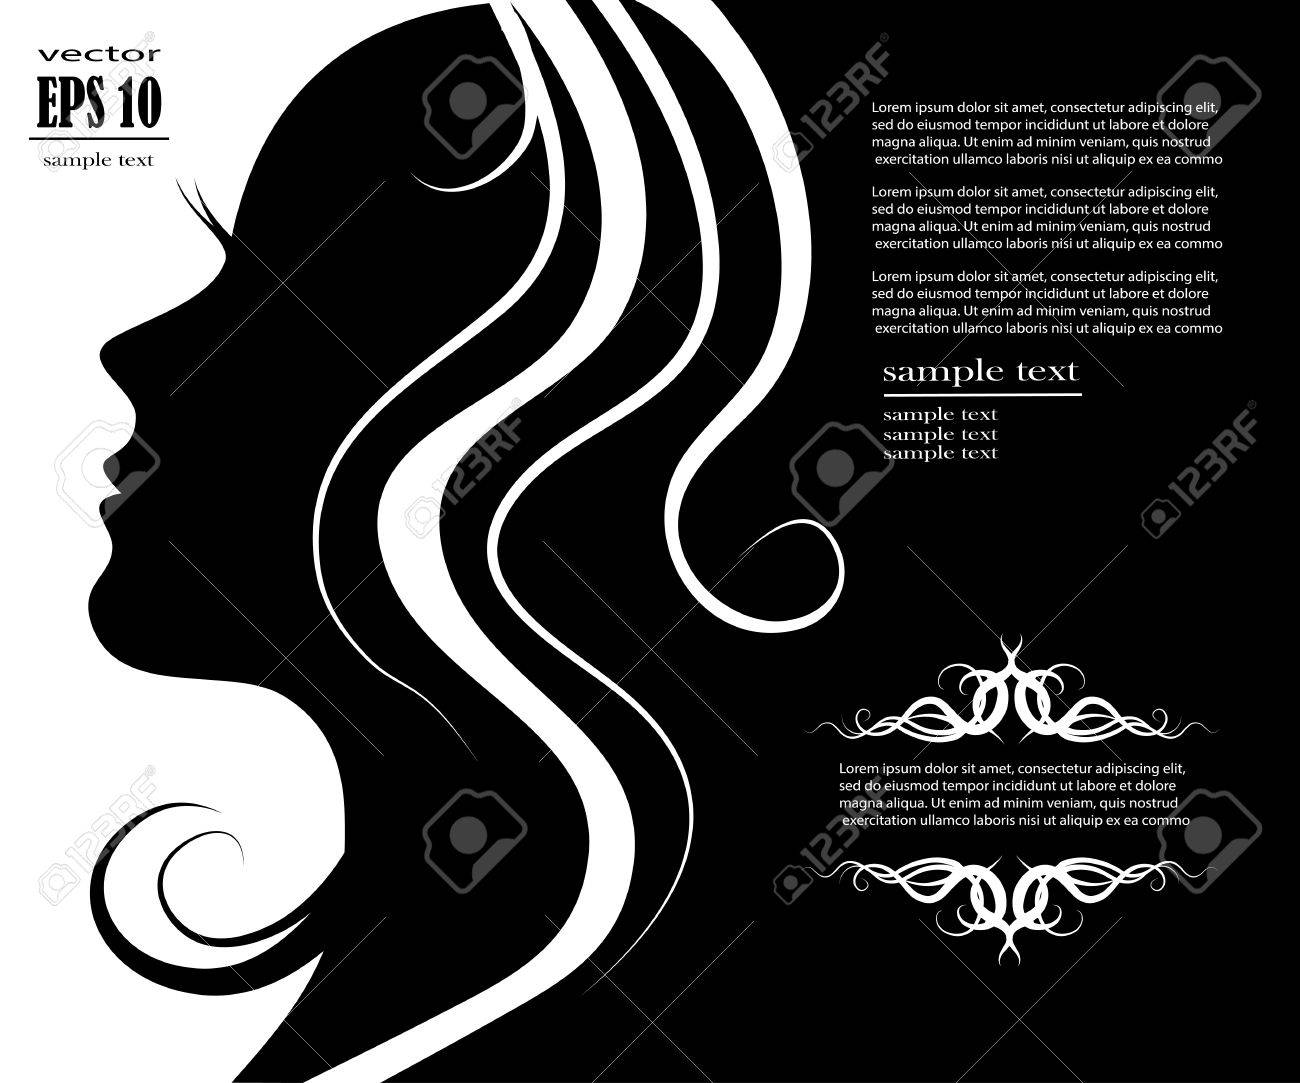 Vector illustration of Woman's silhouette with beautiful hair - 31414862